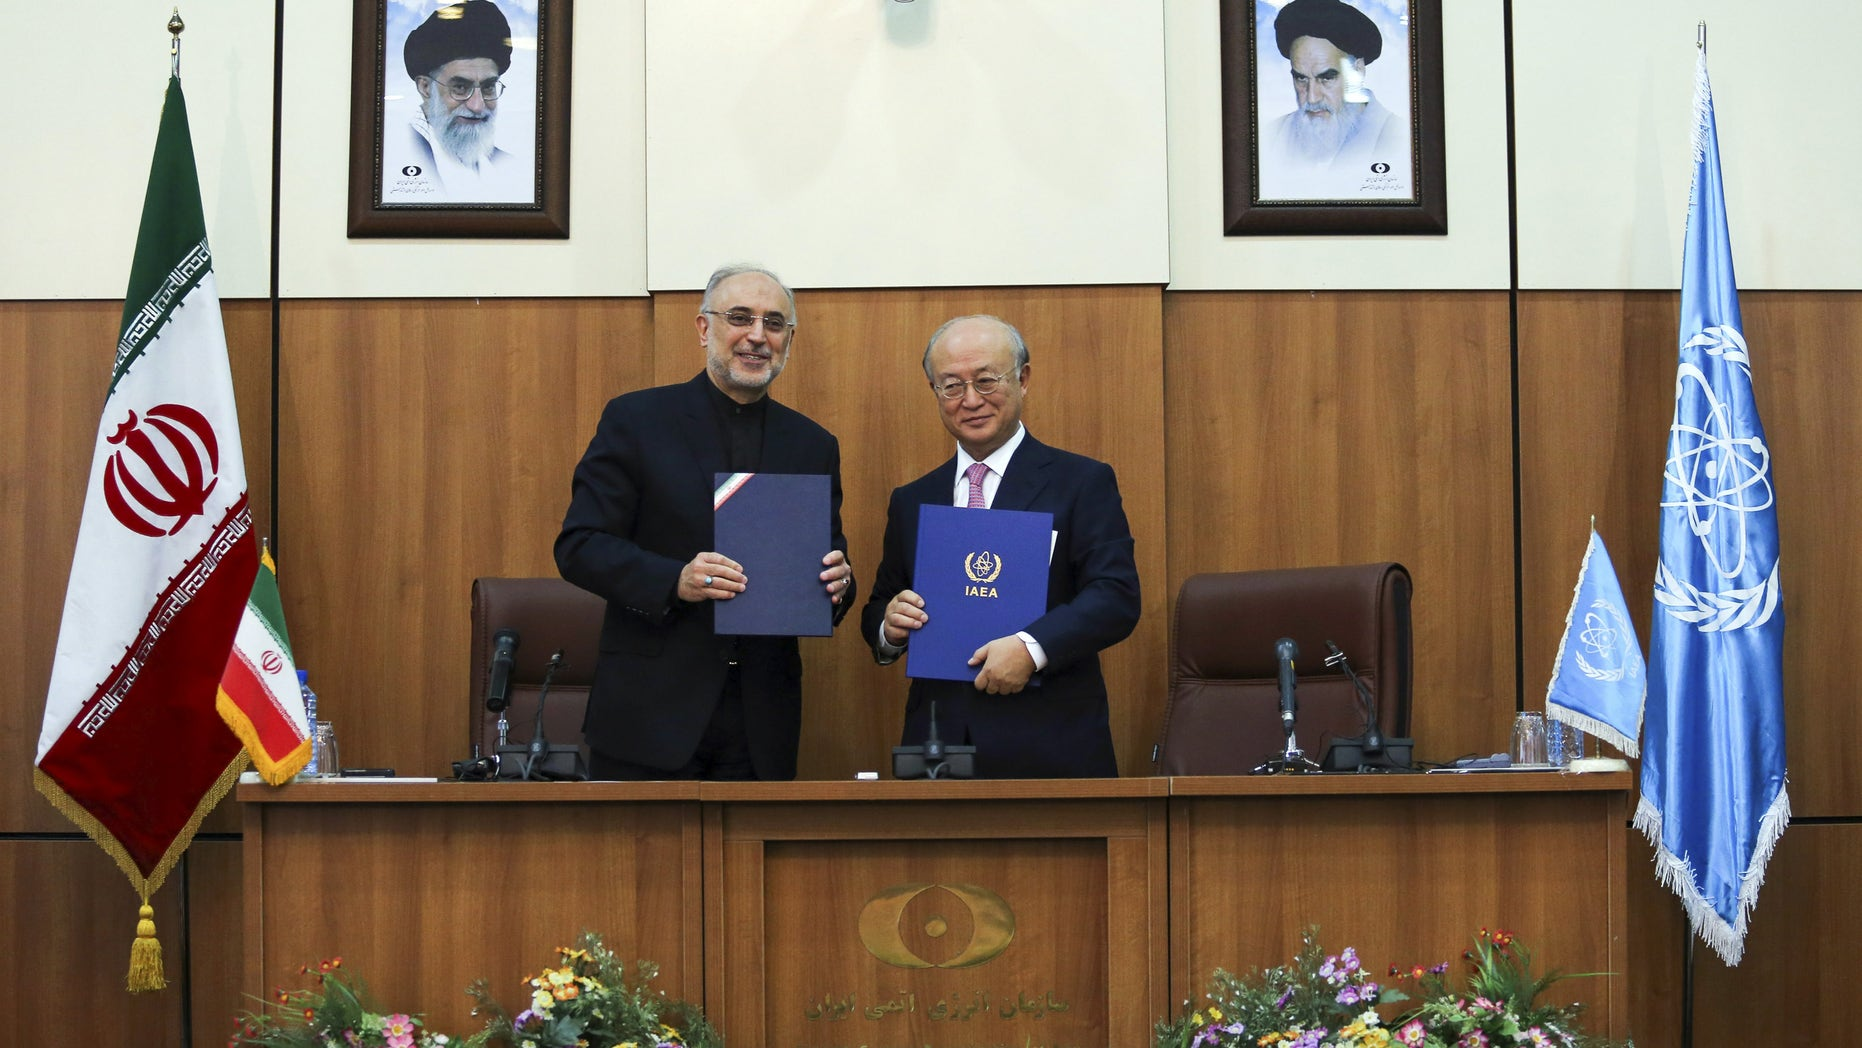 Head of Iran's Atomic Energy Organization Ali Akbar Salehi, left, and International Atomic Energy Agency (IAEA) Director General Yukiya Amano, pose for a photo under portraits of Iran's supreme leader, Ayatollah Ali Khamenei, left, and Iran's founder of Islamic Republic, Ayatollah Ruhollah Khomeini, right, following their meeting in Tehran, Iran, Monday, Nov. 11, 2013. Iran and the U.N. nuclear watchdog agency have reached a roadmap deal for cooperation during talks in Tehran Saturday that expands the monitoring of the country's nuclear sites. (AP Photo/ ISNA, Mehdi Ghasemi)